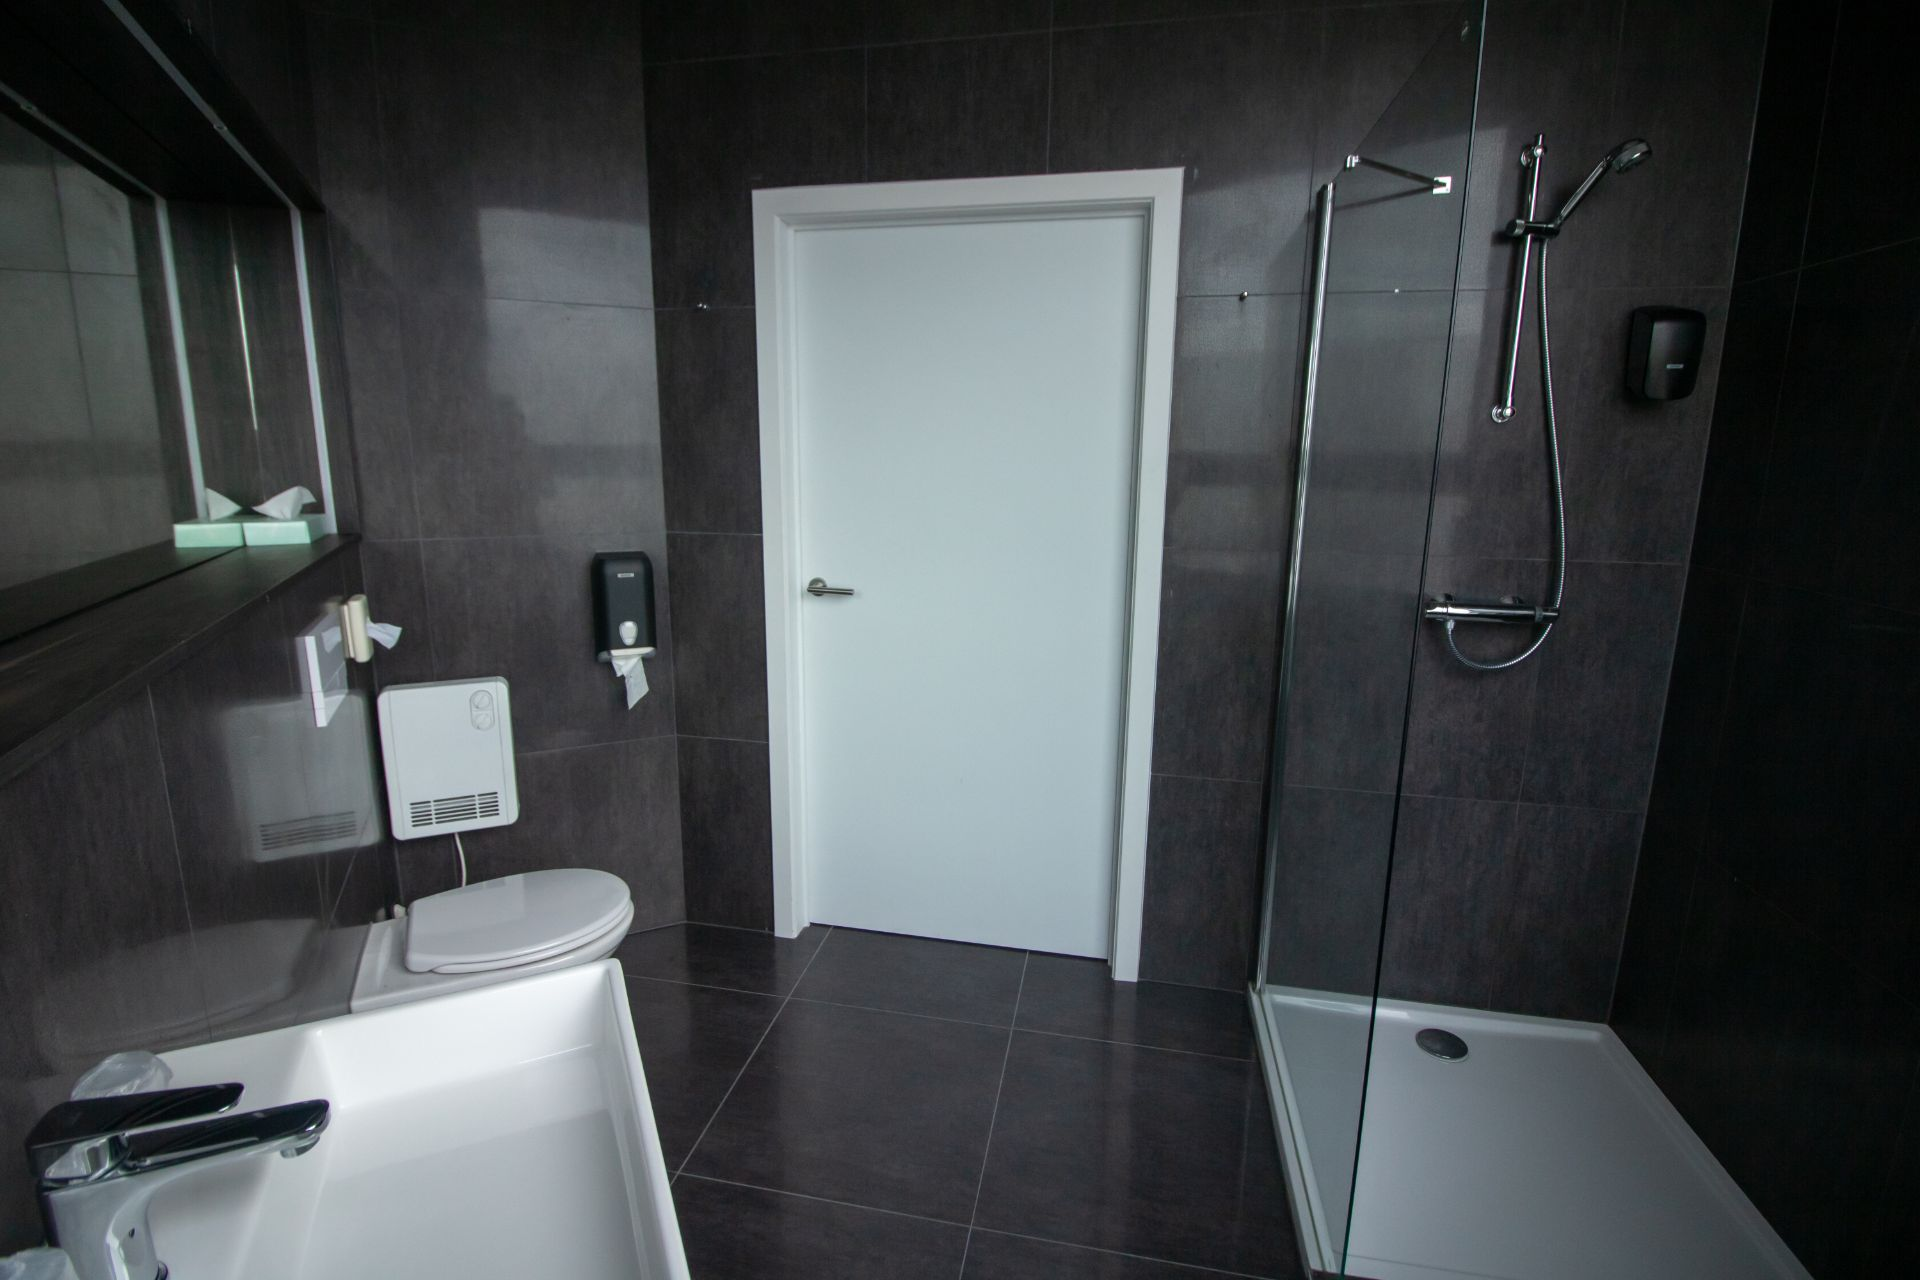 sleek-modern-black-hotel-bathroom-with-shower-toilet-mirror-and-sink-hotel-elisabeth-mechelen-belgium